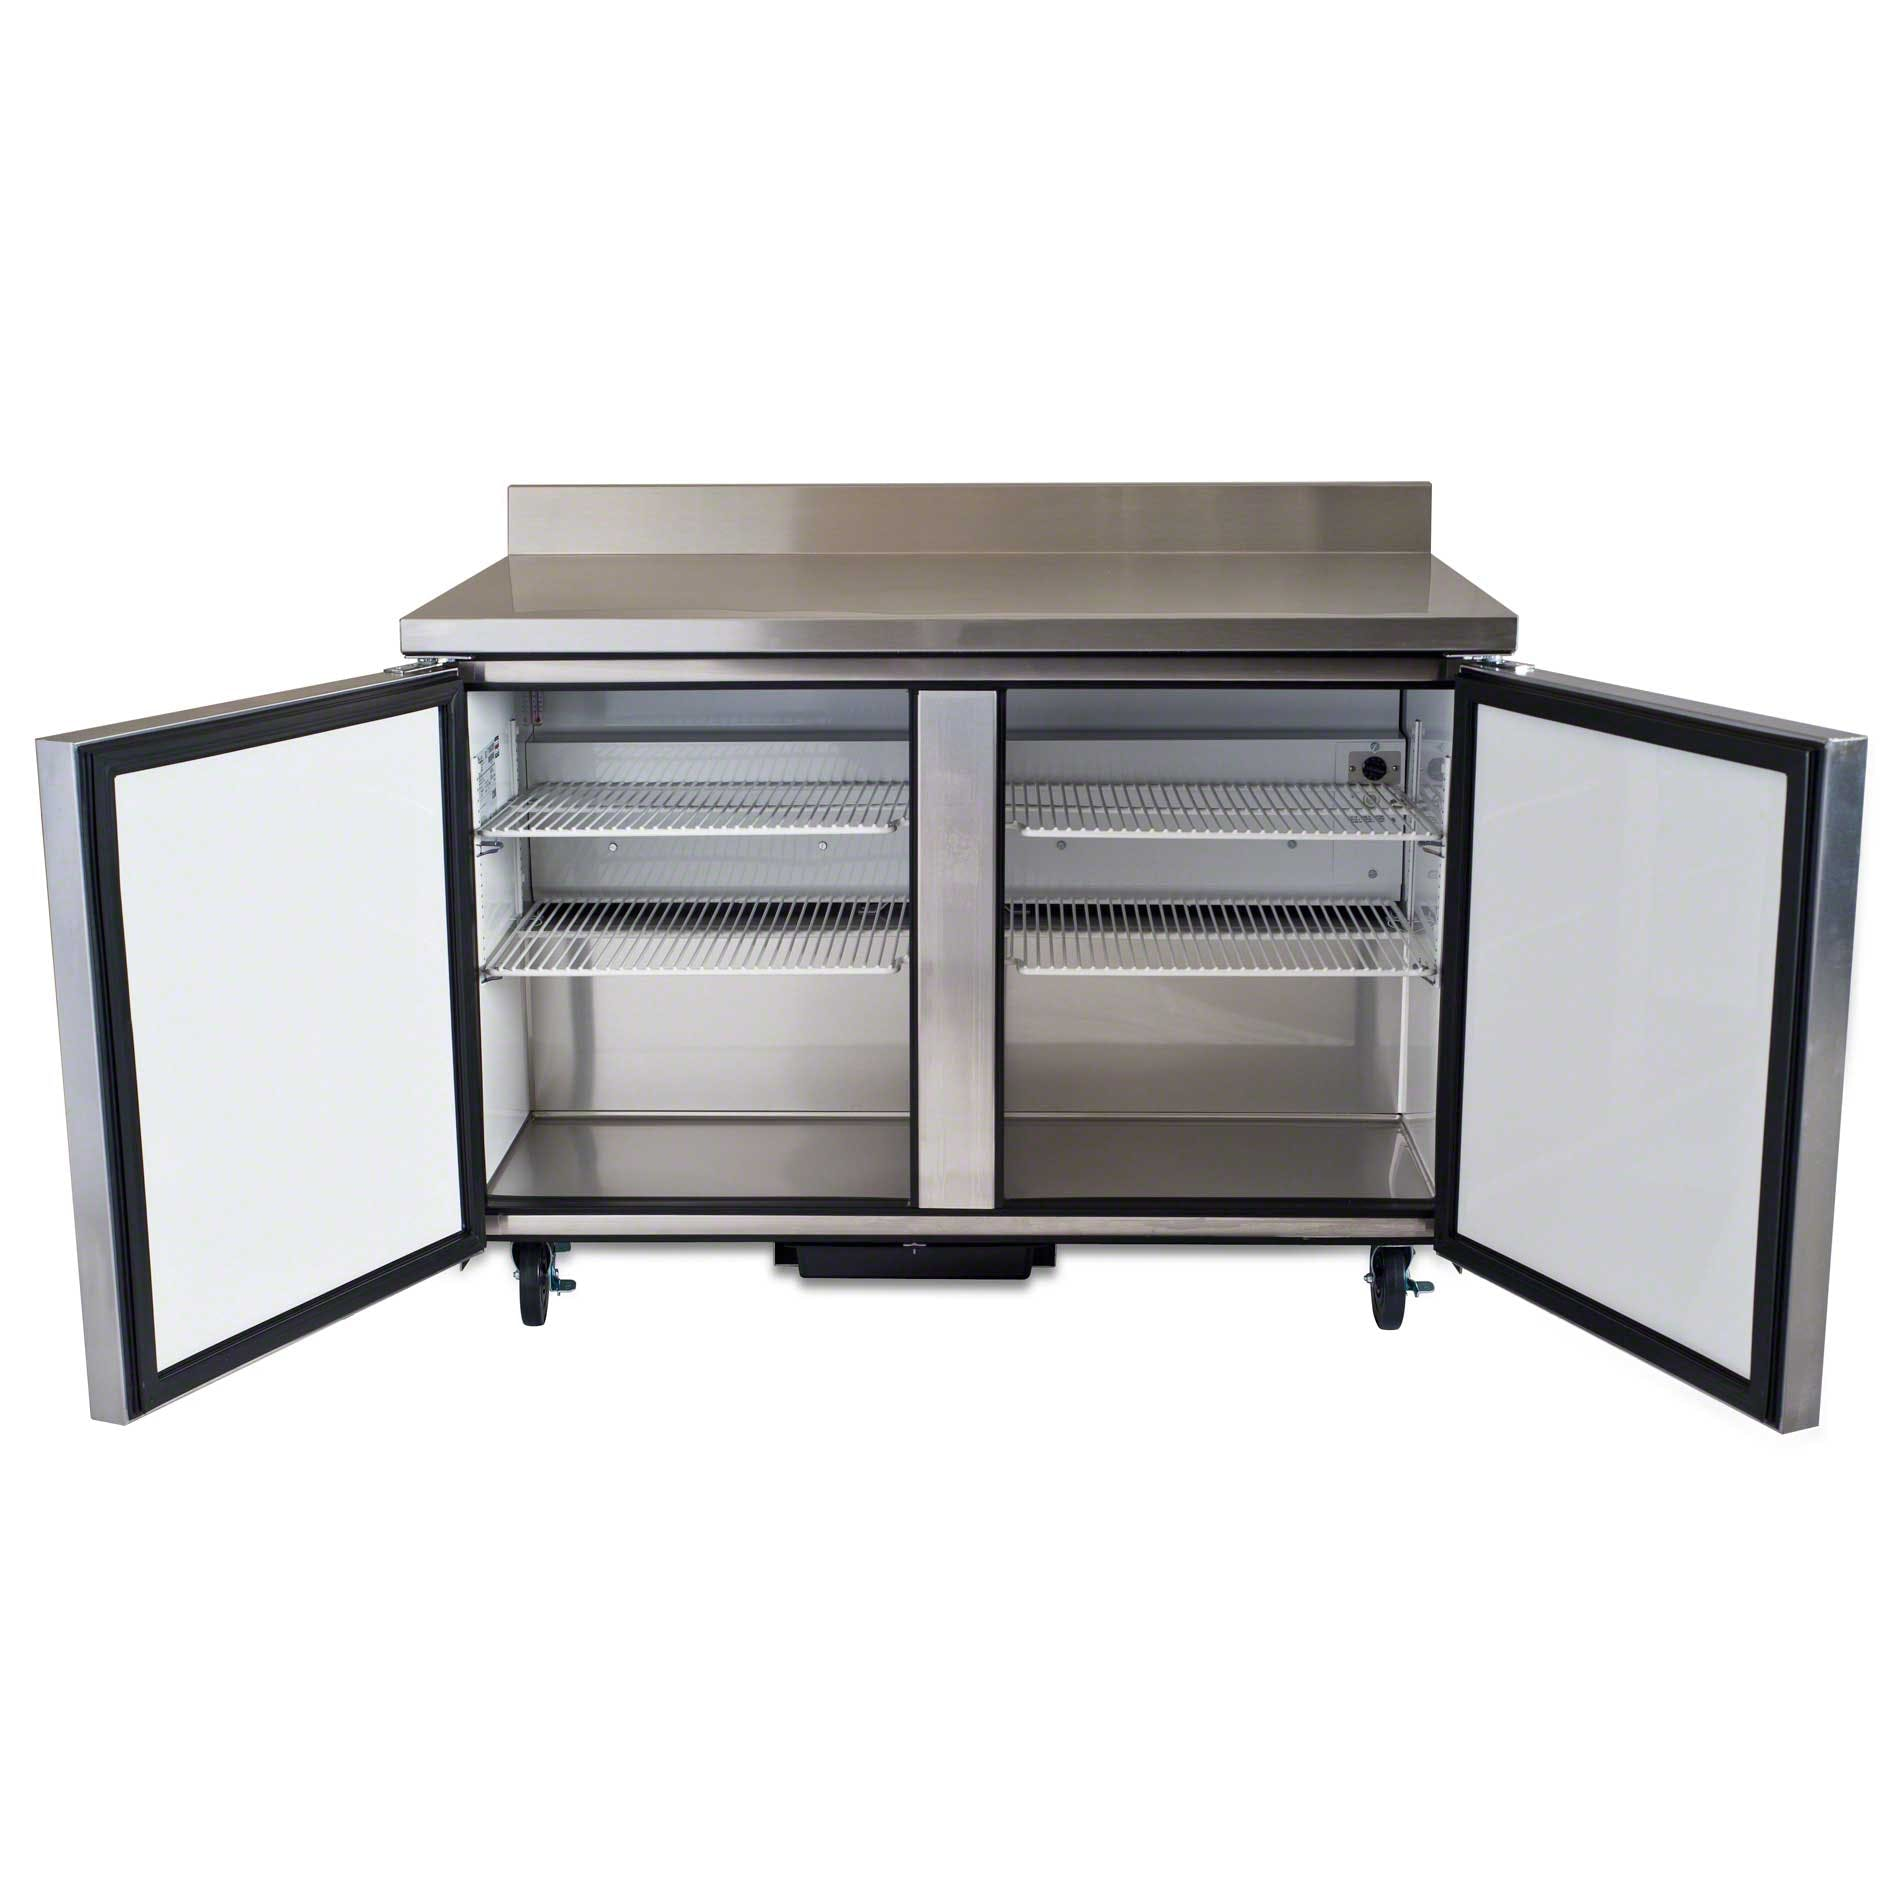 "True - TWT-48 49"" Worktop Refrigerator Commercial refrigerator sold by Food Service Warehouse"